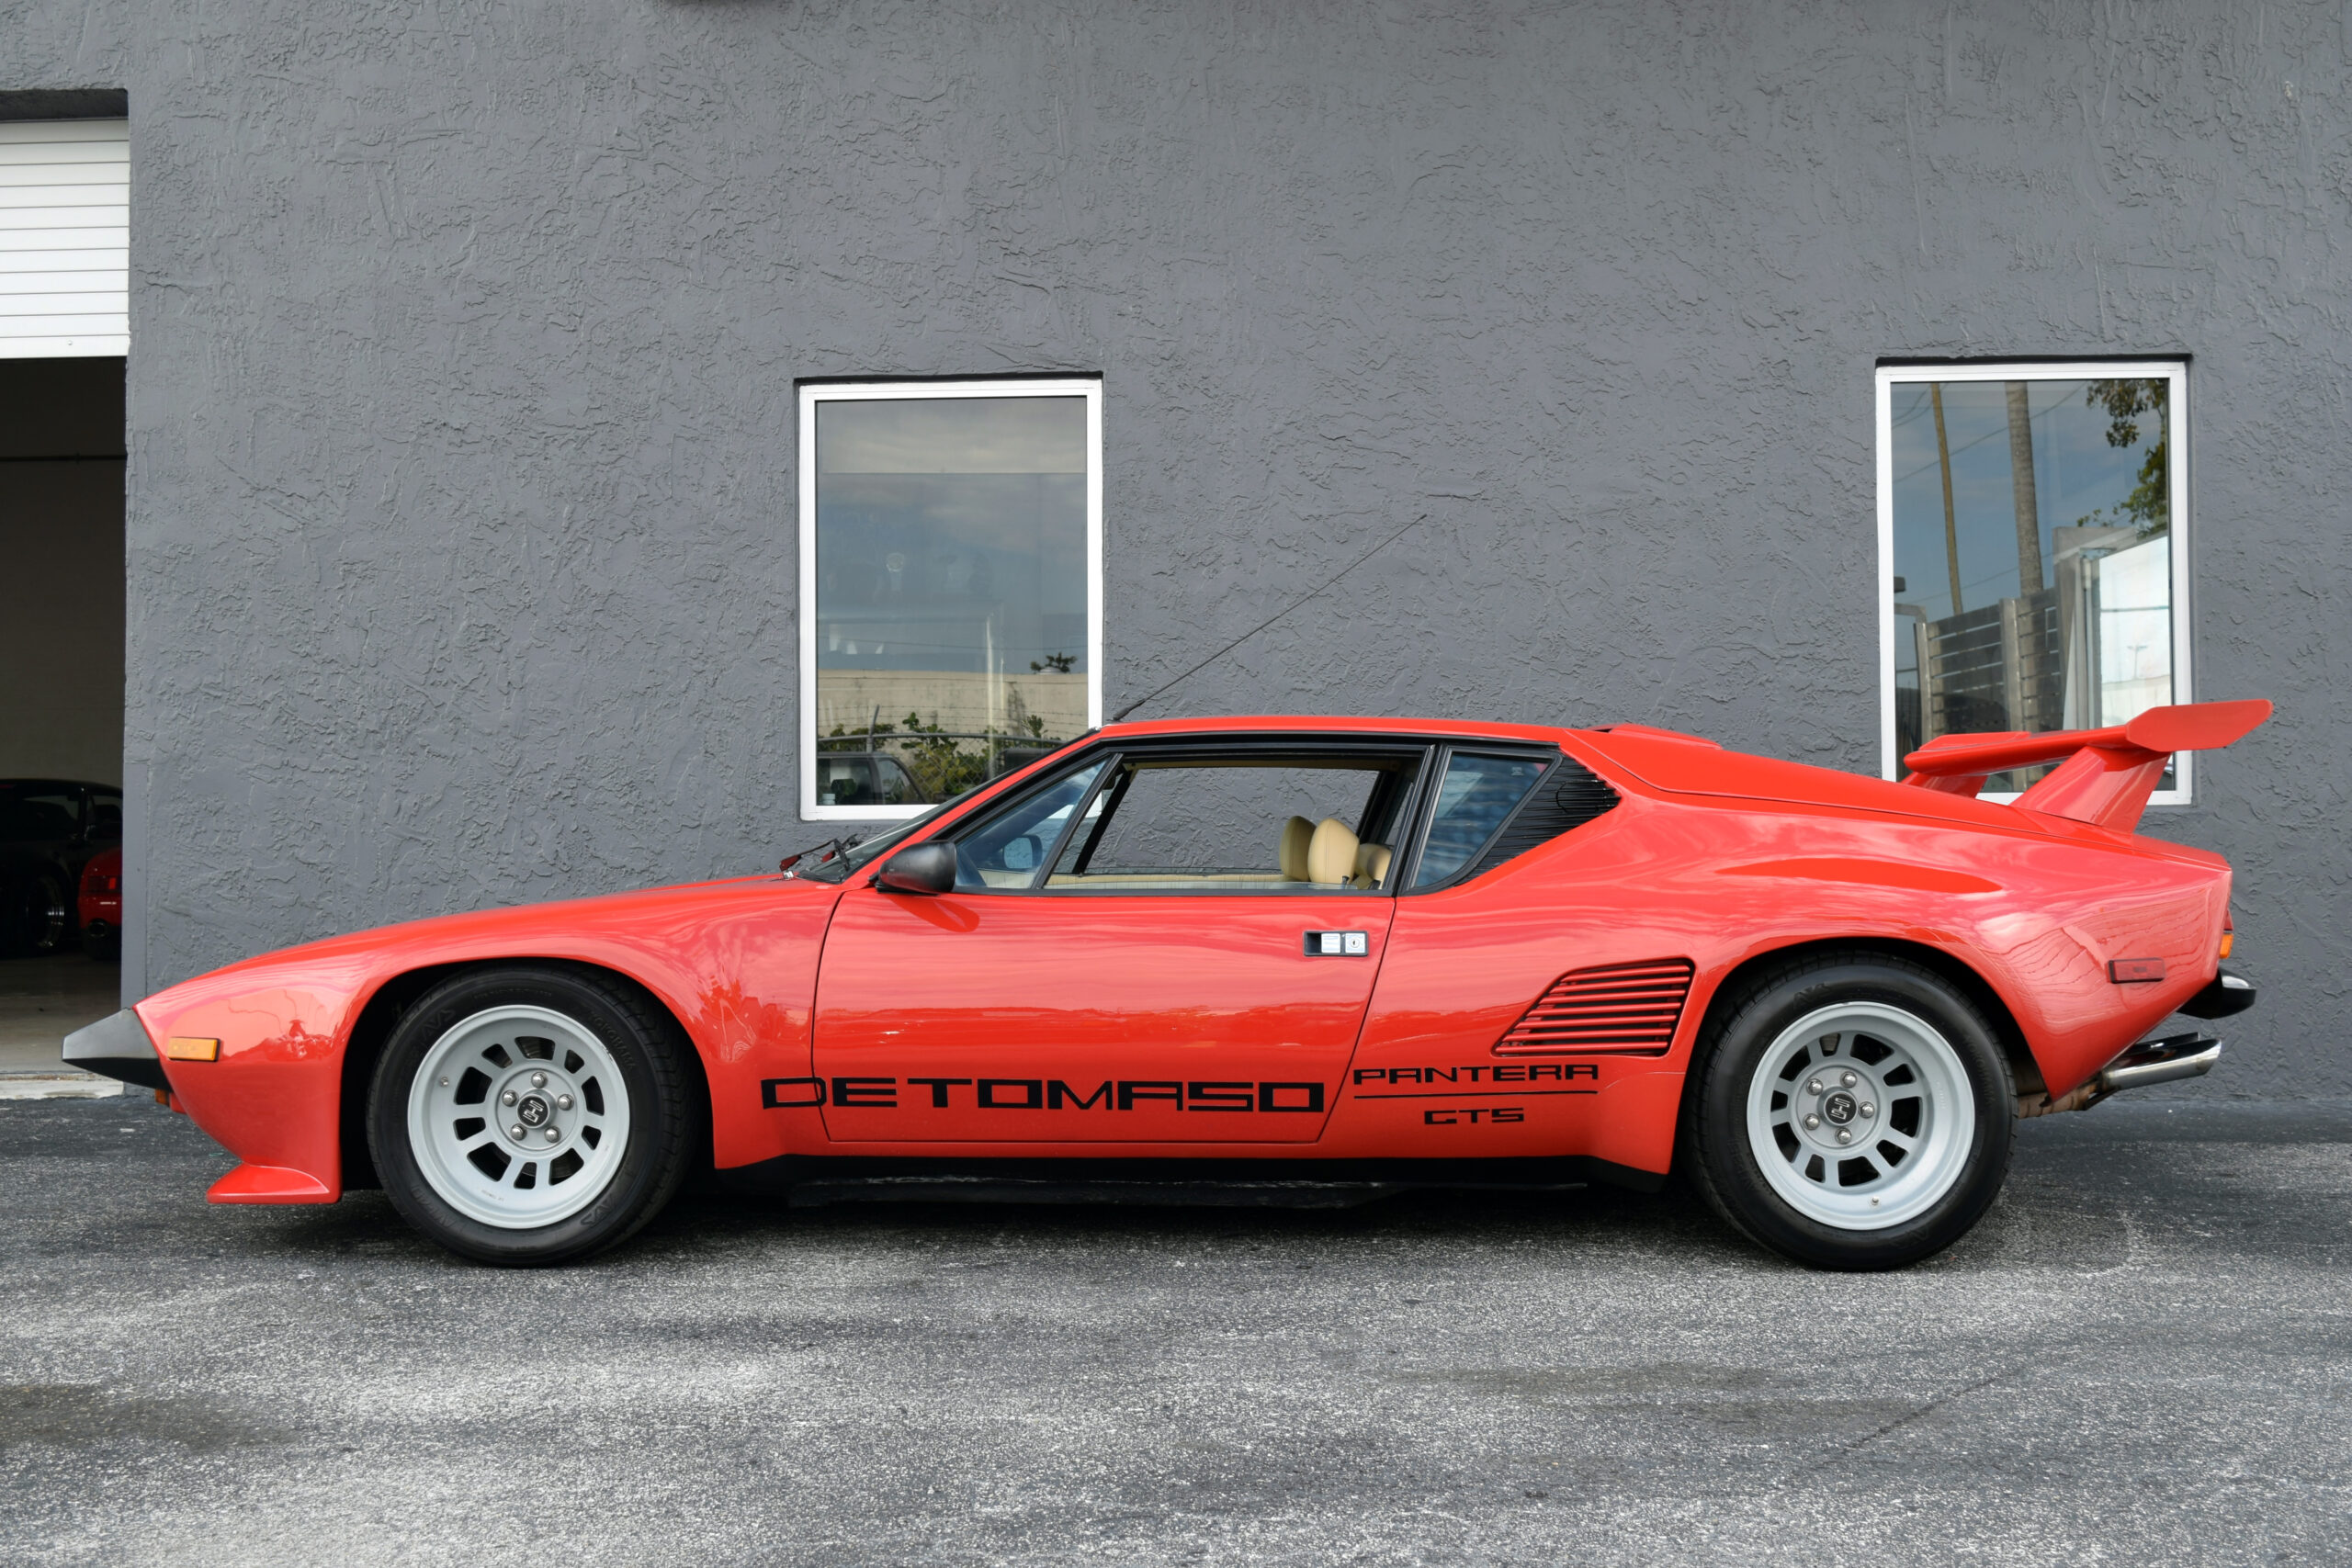 1986 De Tomaso Pantera GT5-S Factory Wide body   Very rare One of only 182 built  Pantera GT5-S produced, one owner since new in Maranello Italy —- All original unmodified car.